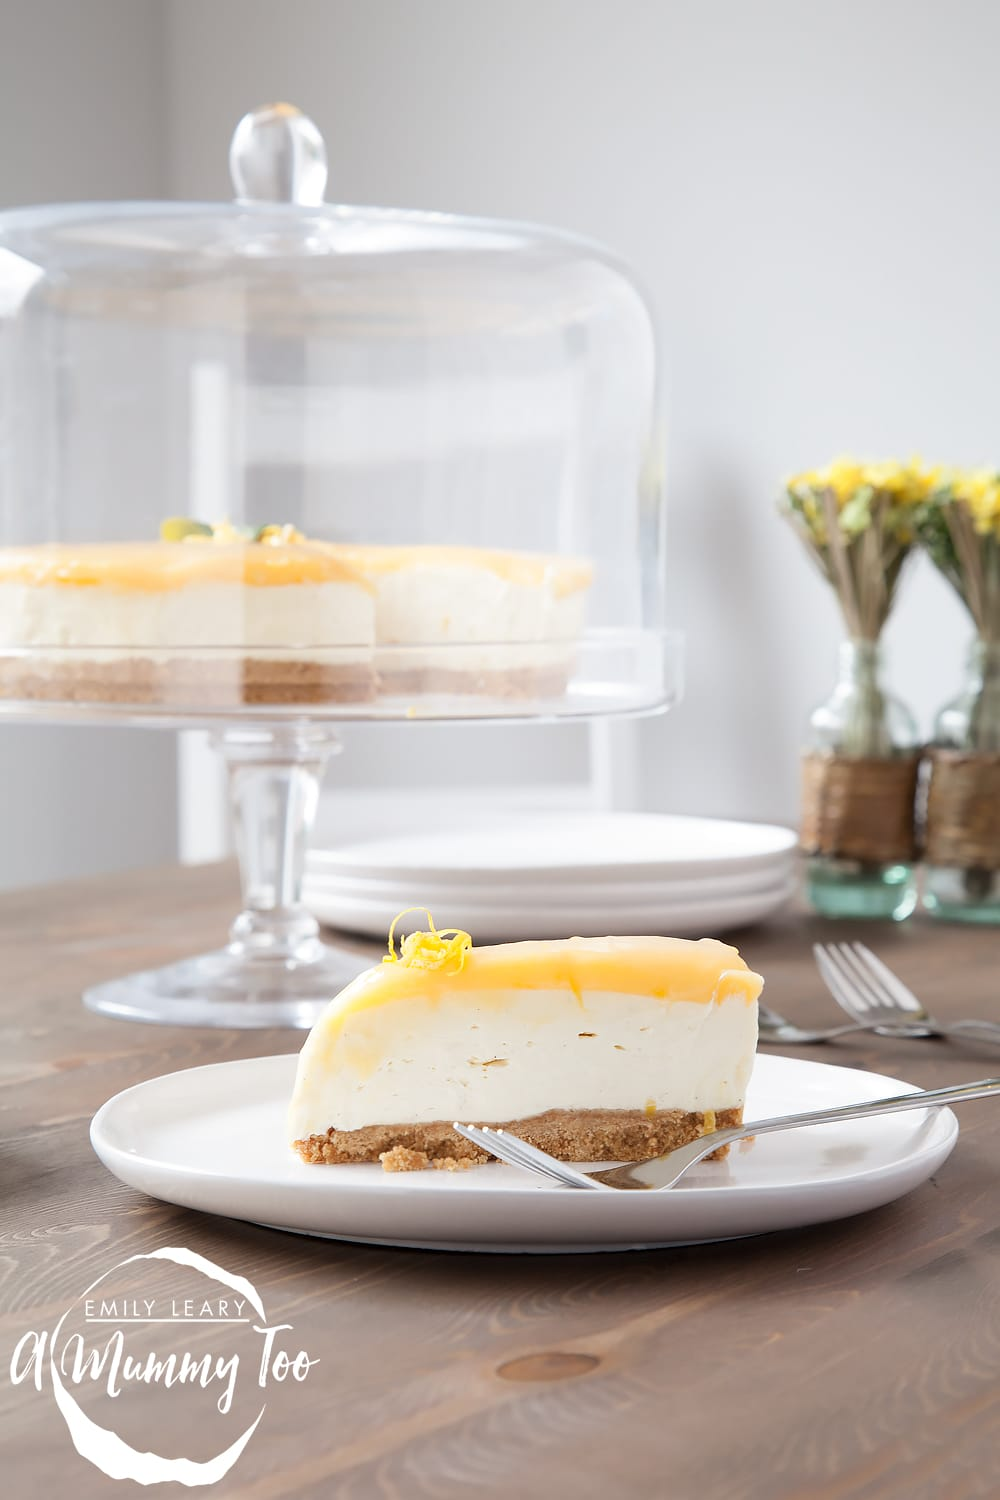 A slice of no-bake lemon curd and white chocolate cheesecake on a plate, with the remaining cheesecake in a stand behind.